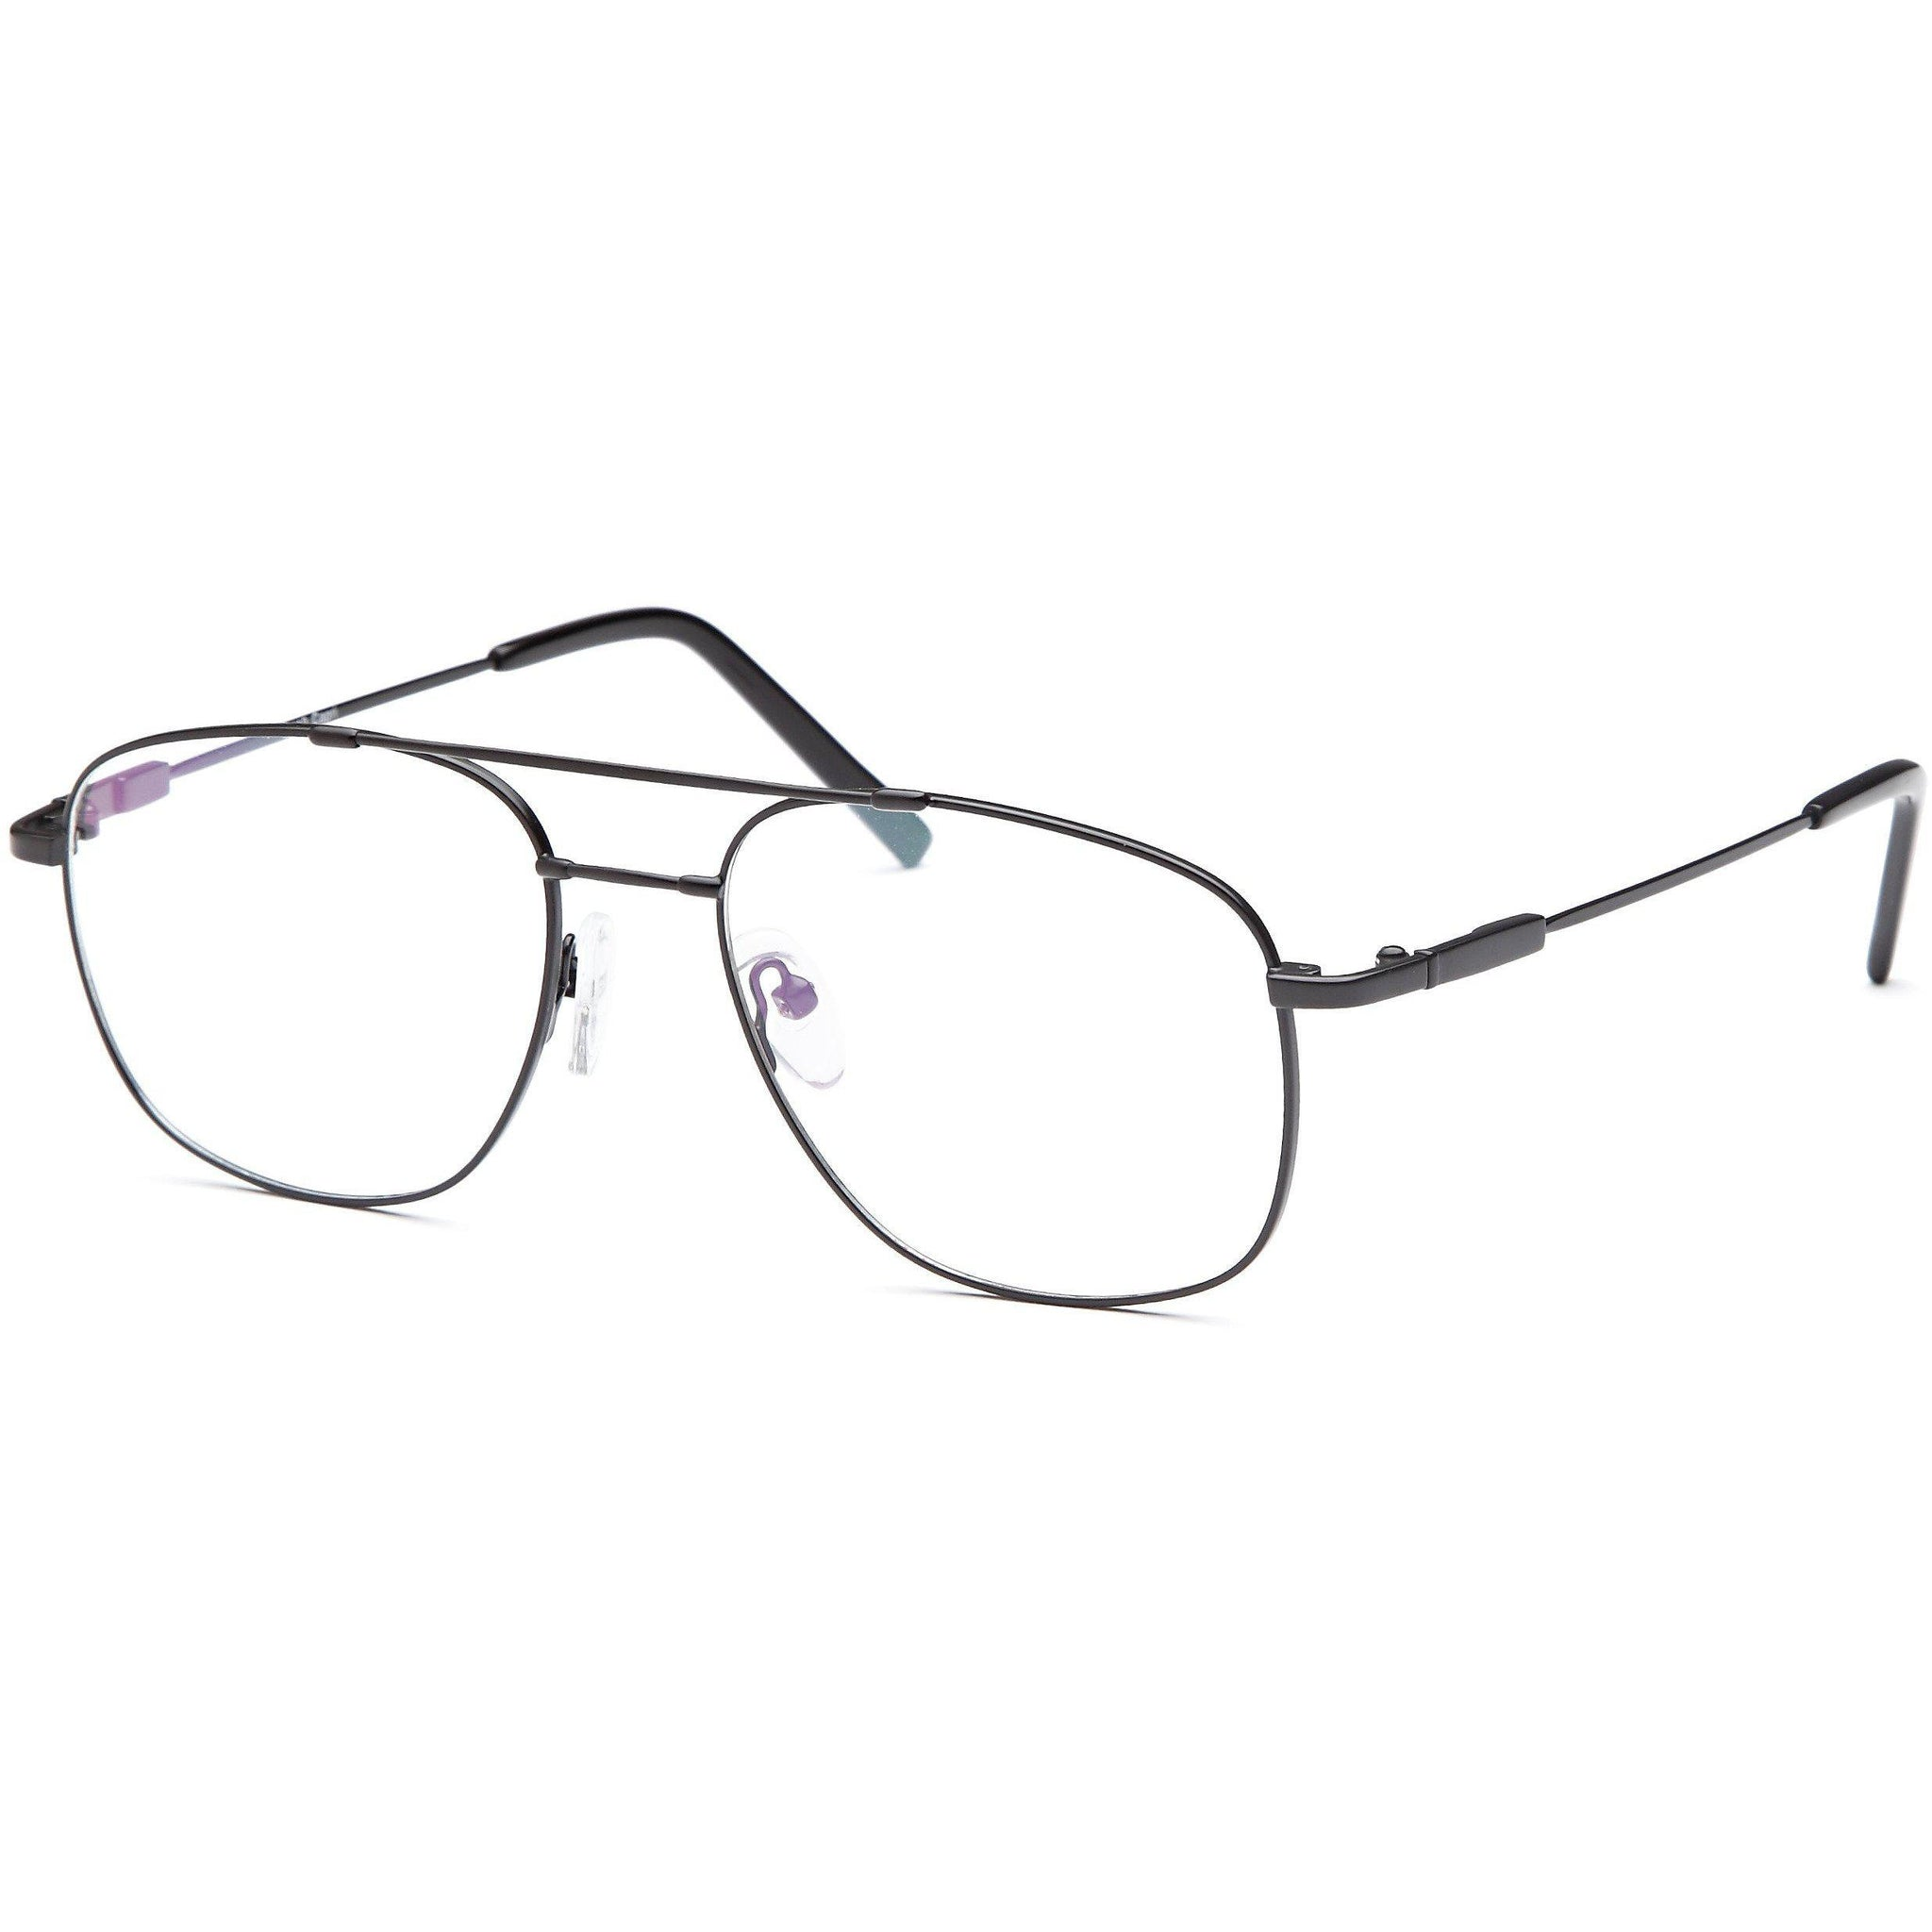 Titanium Prescription Glasses FX 10 Eyeglasses Frame